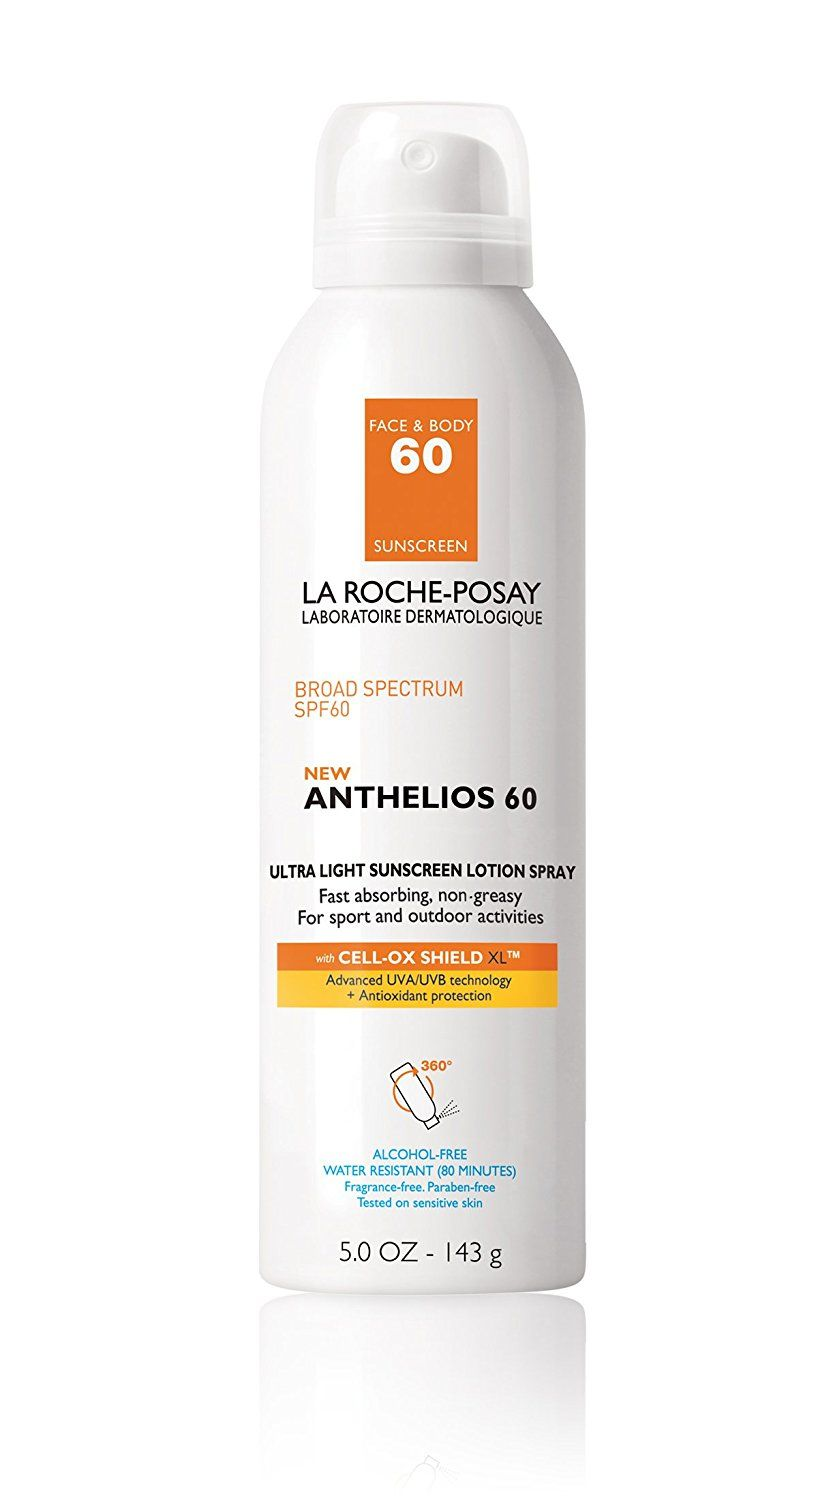 Xịt chống nắng La Roche-Posay Anthelios Lotion Spray Sunscreen SPF 60.